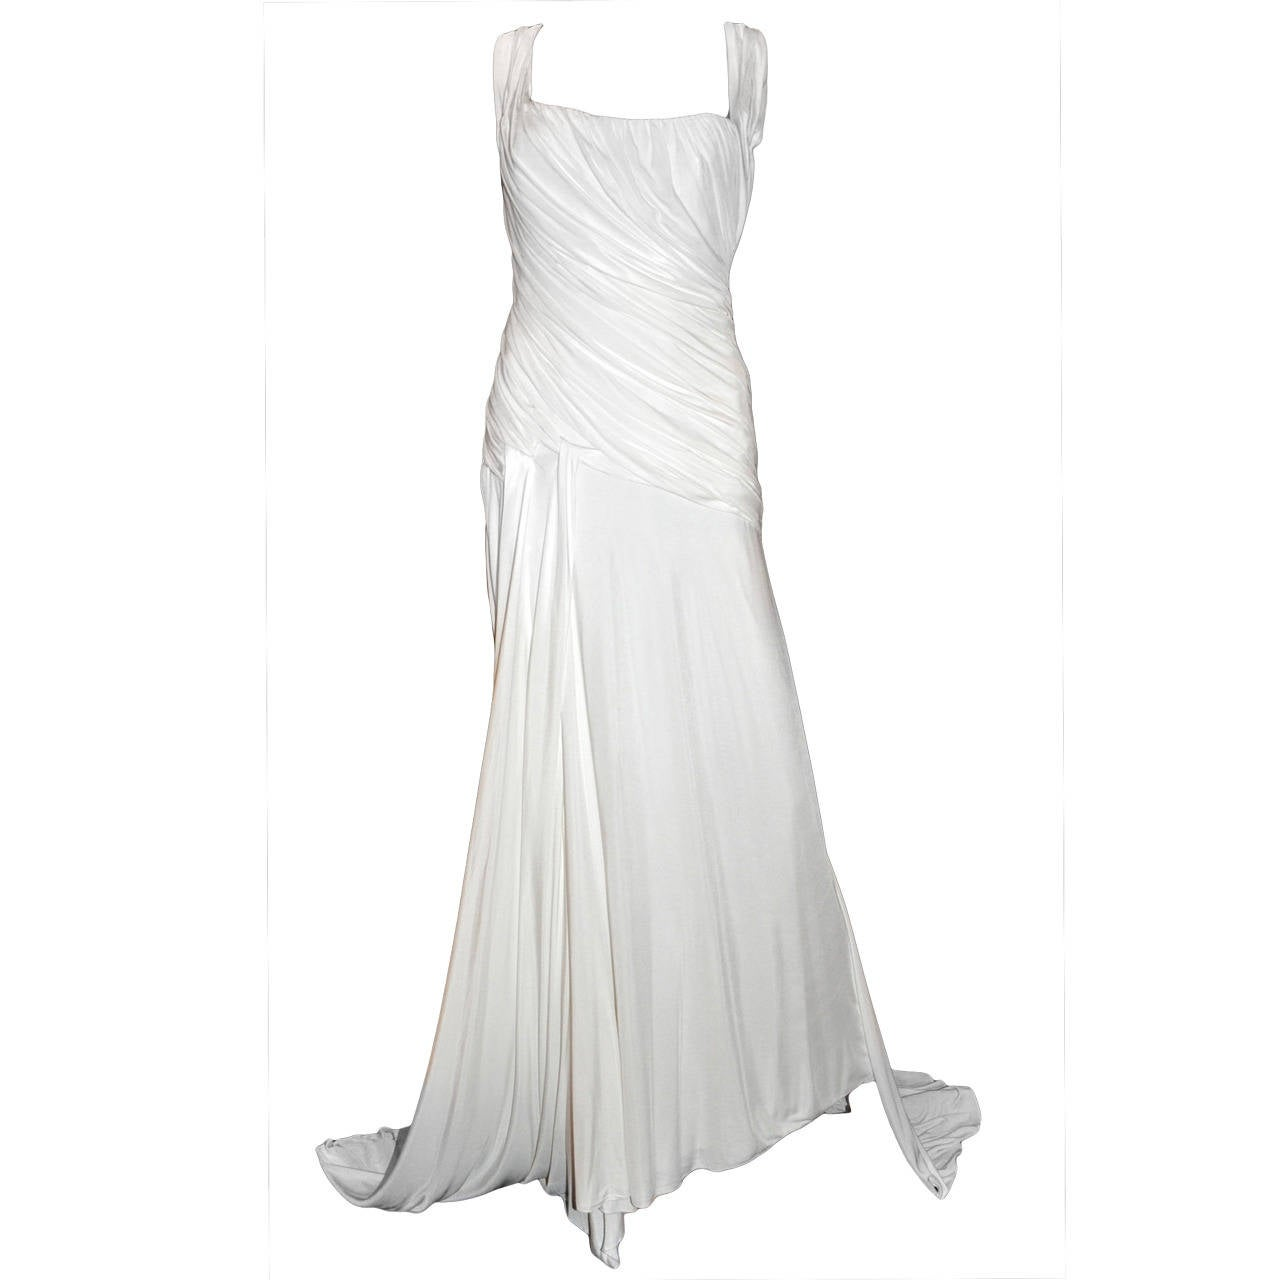 New Versace white gown 1